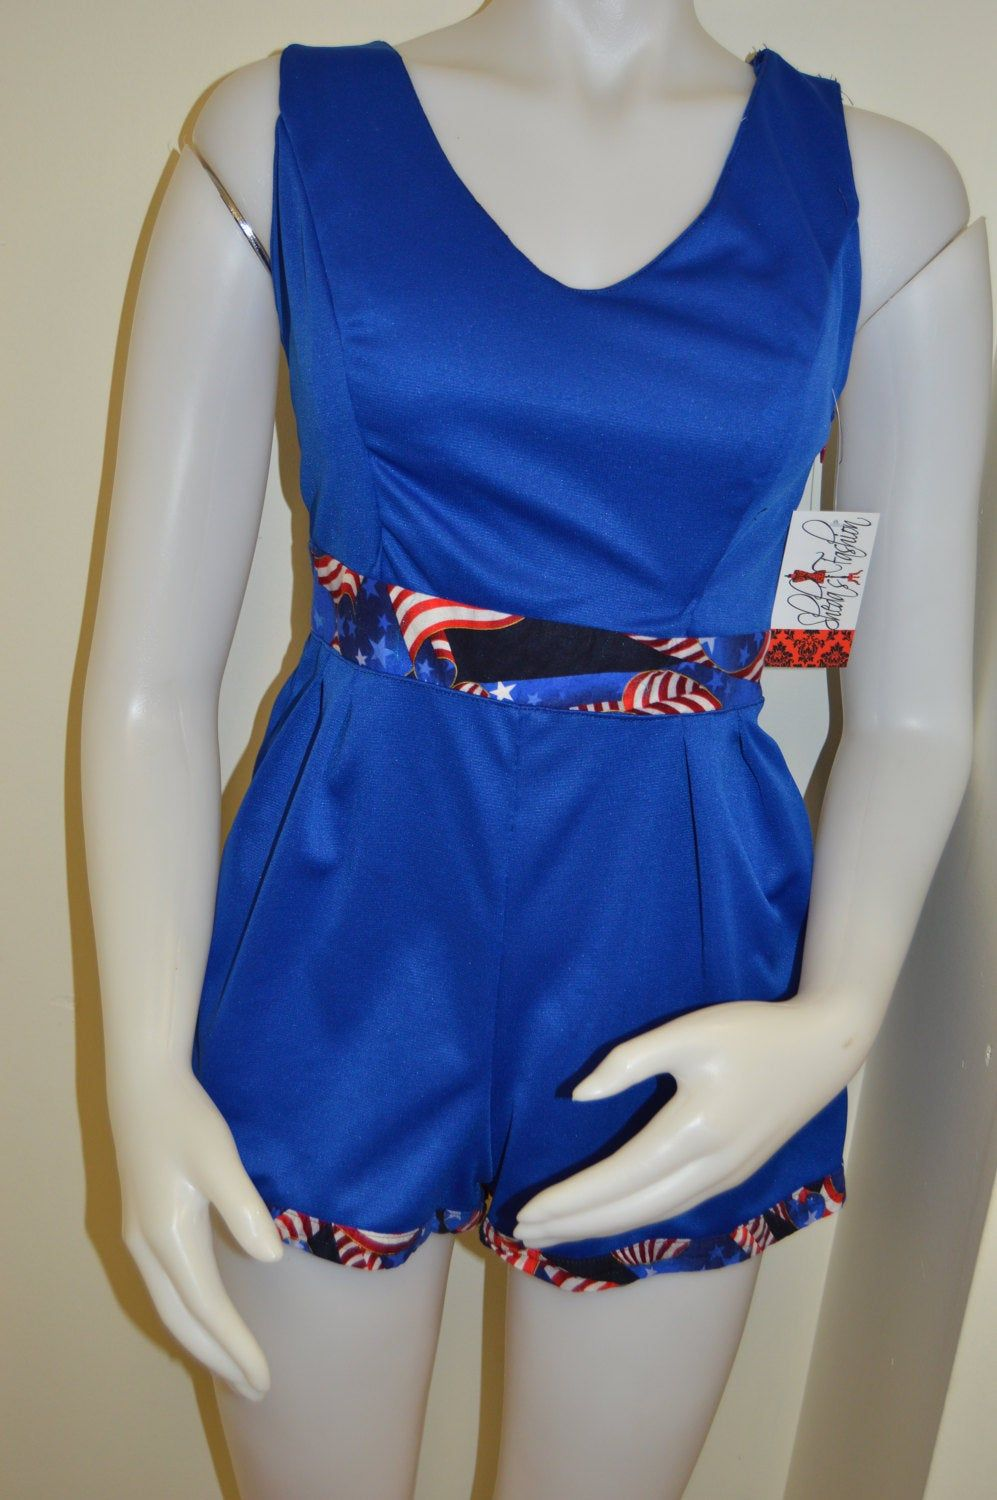 Patriotic pin up romper! Royal blue sleeveless romper criss-cross back with red, white & blue flag print accents. Cute and playful Americana #IndependenceDay #royal #flag #July4th #romper #summer #MemorialDay #patriotic #OpenBack #RedWhiteAndBlue